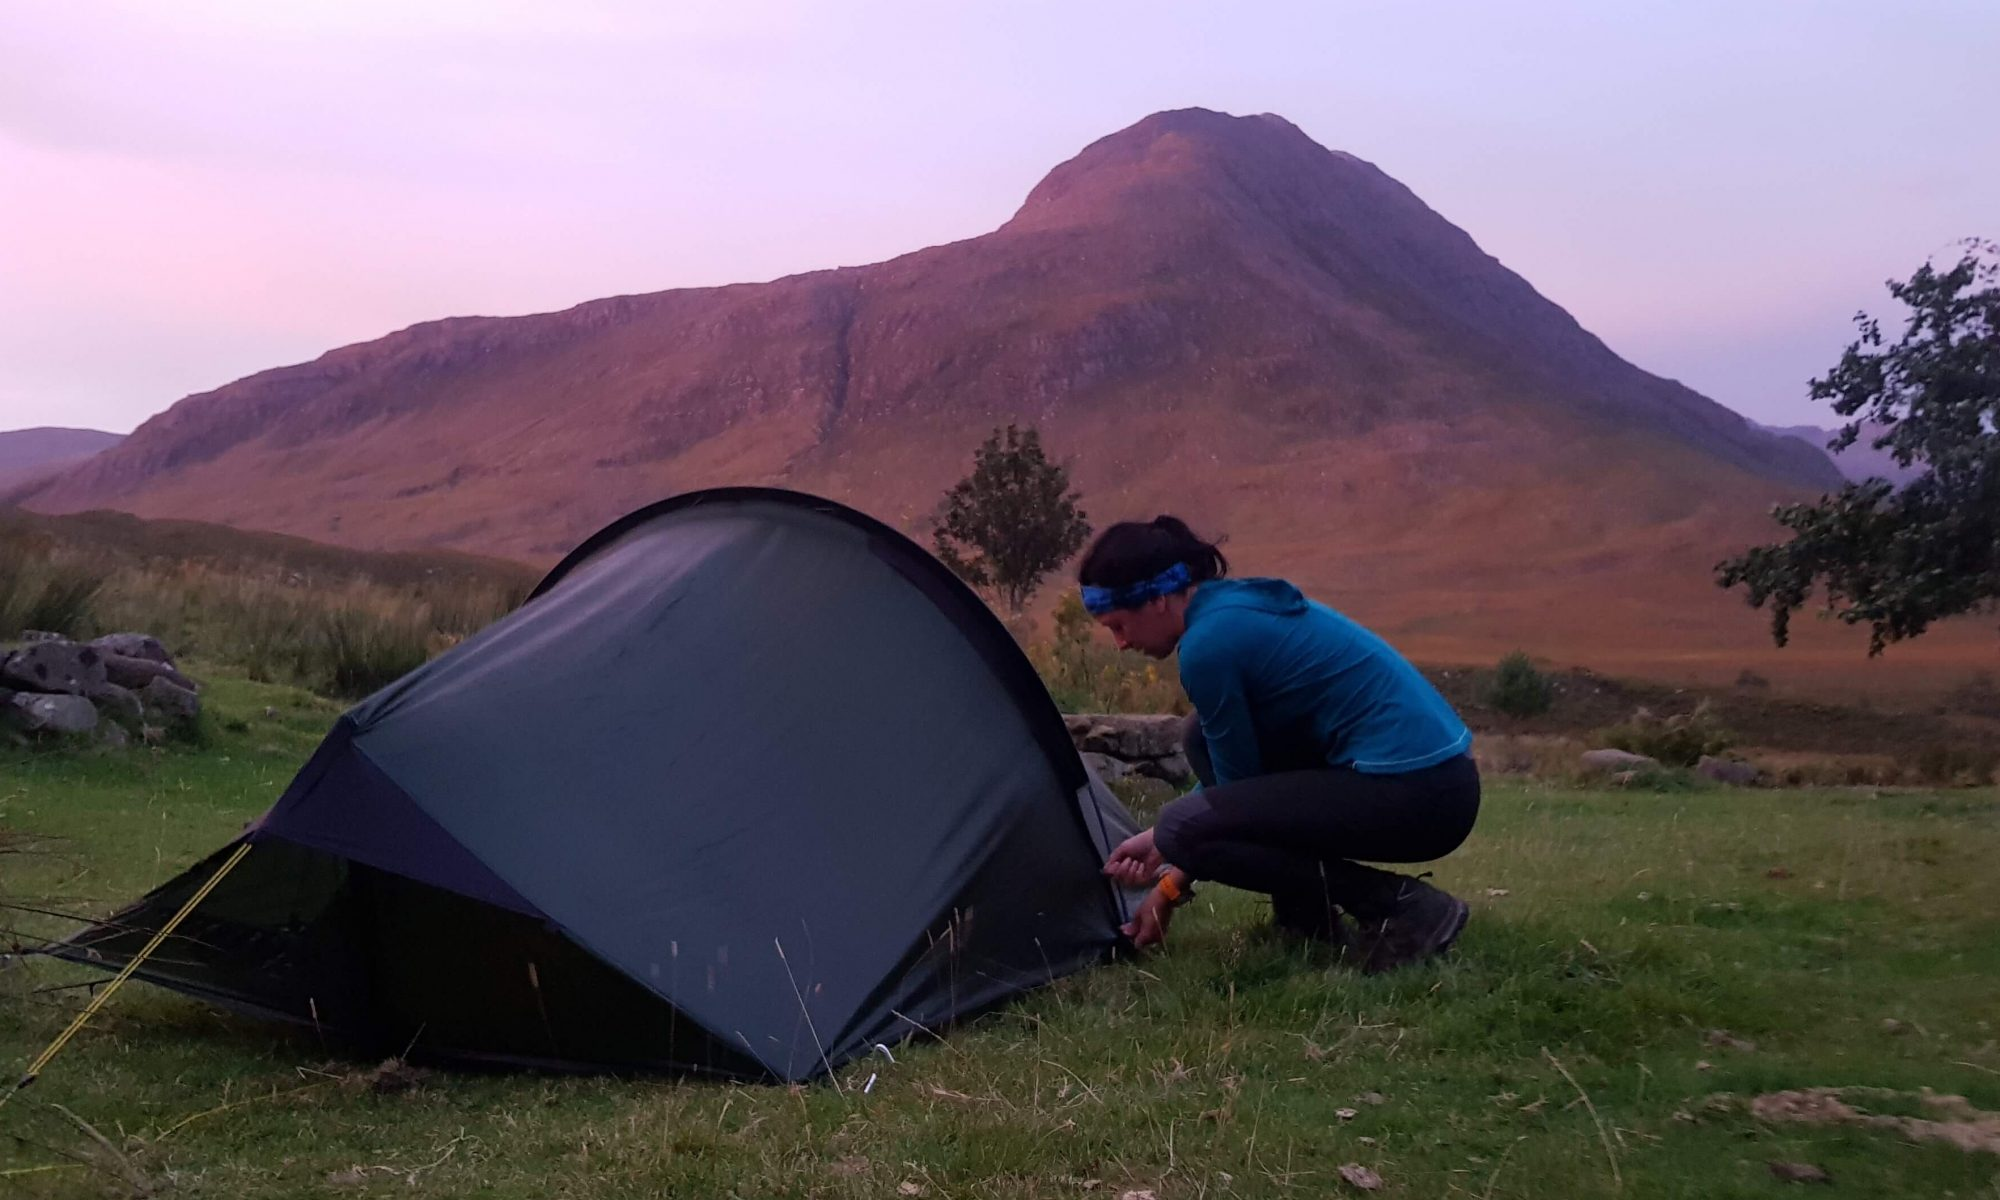 Adventurer Nic zipping down her tent in front of Shenavall Bothy in the Scottish Highlands before setting off to climb the Fisherfield Munros